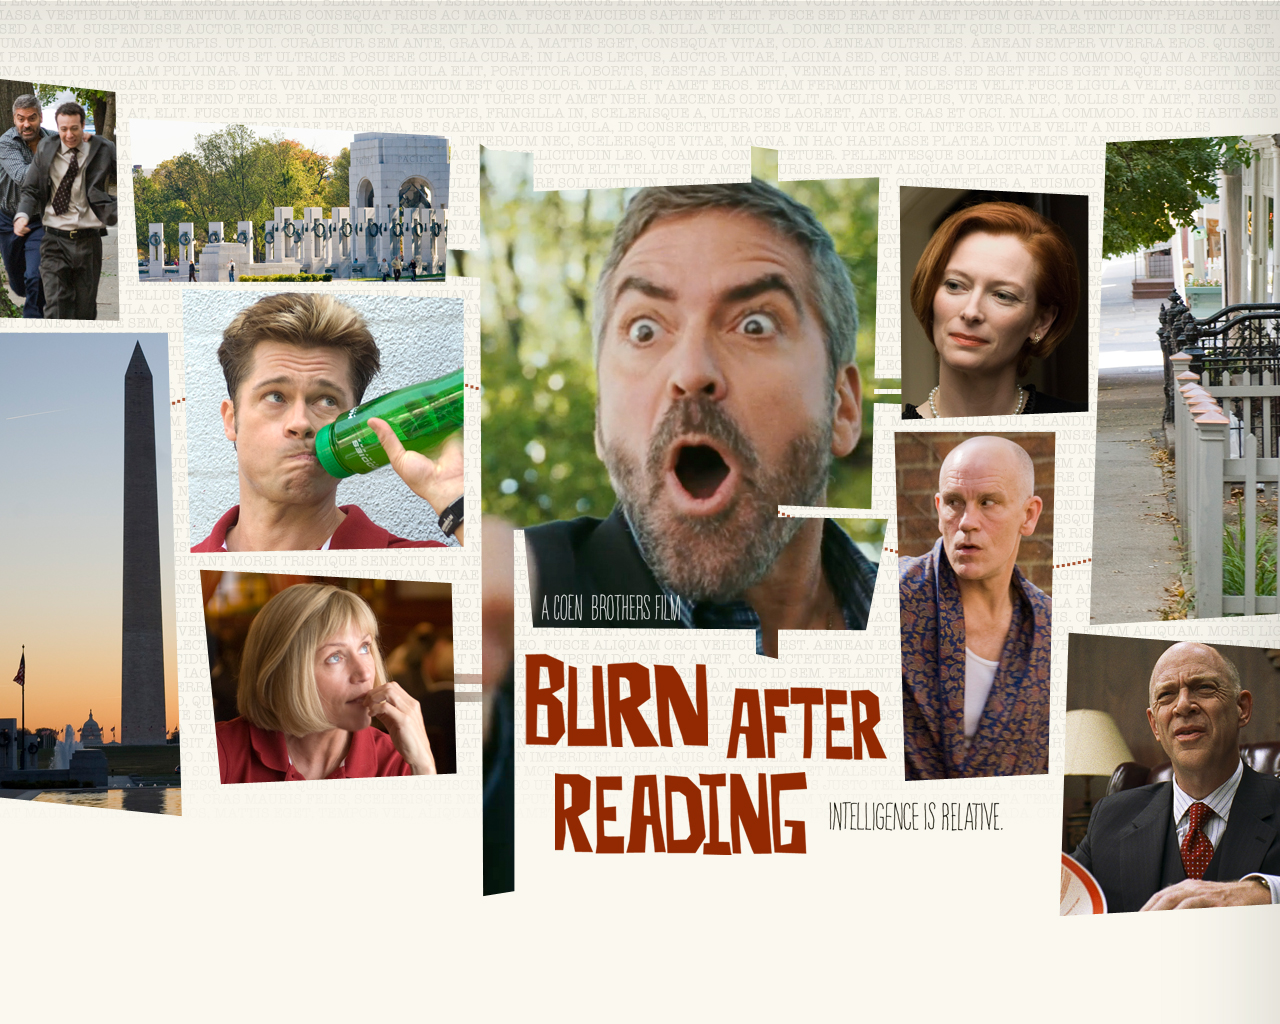 Geogre_Clooney_in_Burn_After_Reading_Wallpaper_1_1280